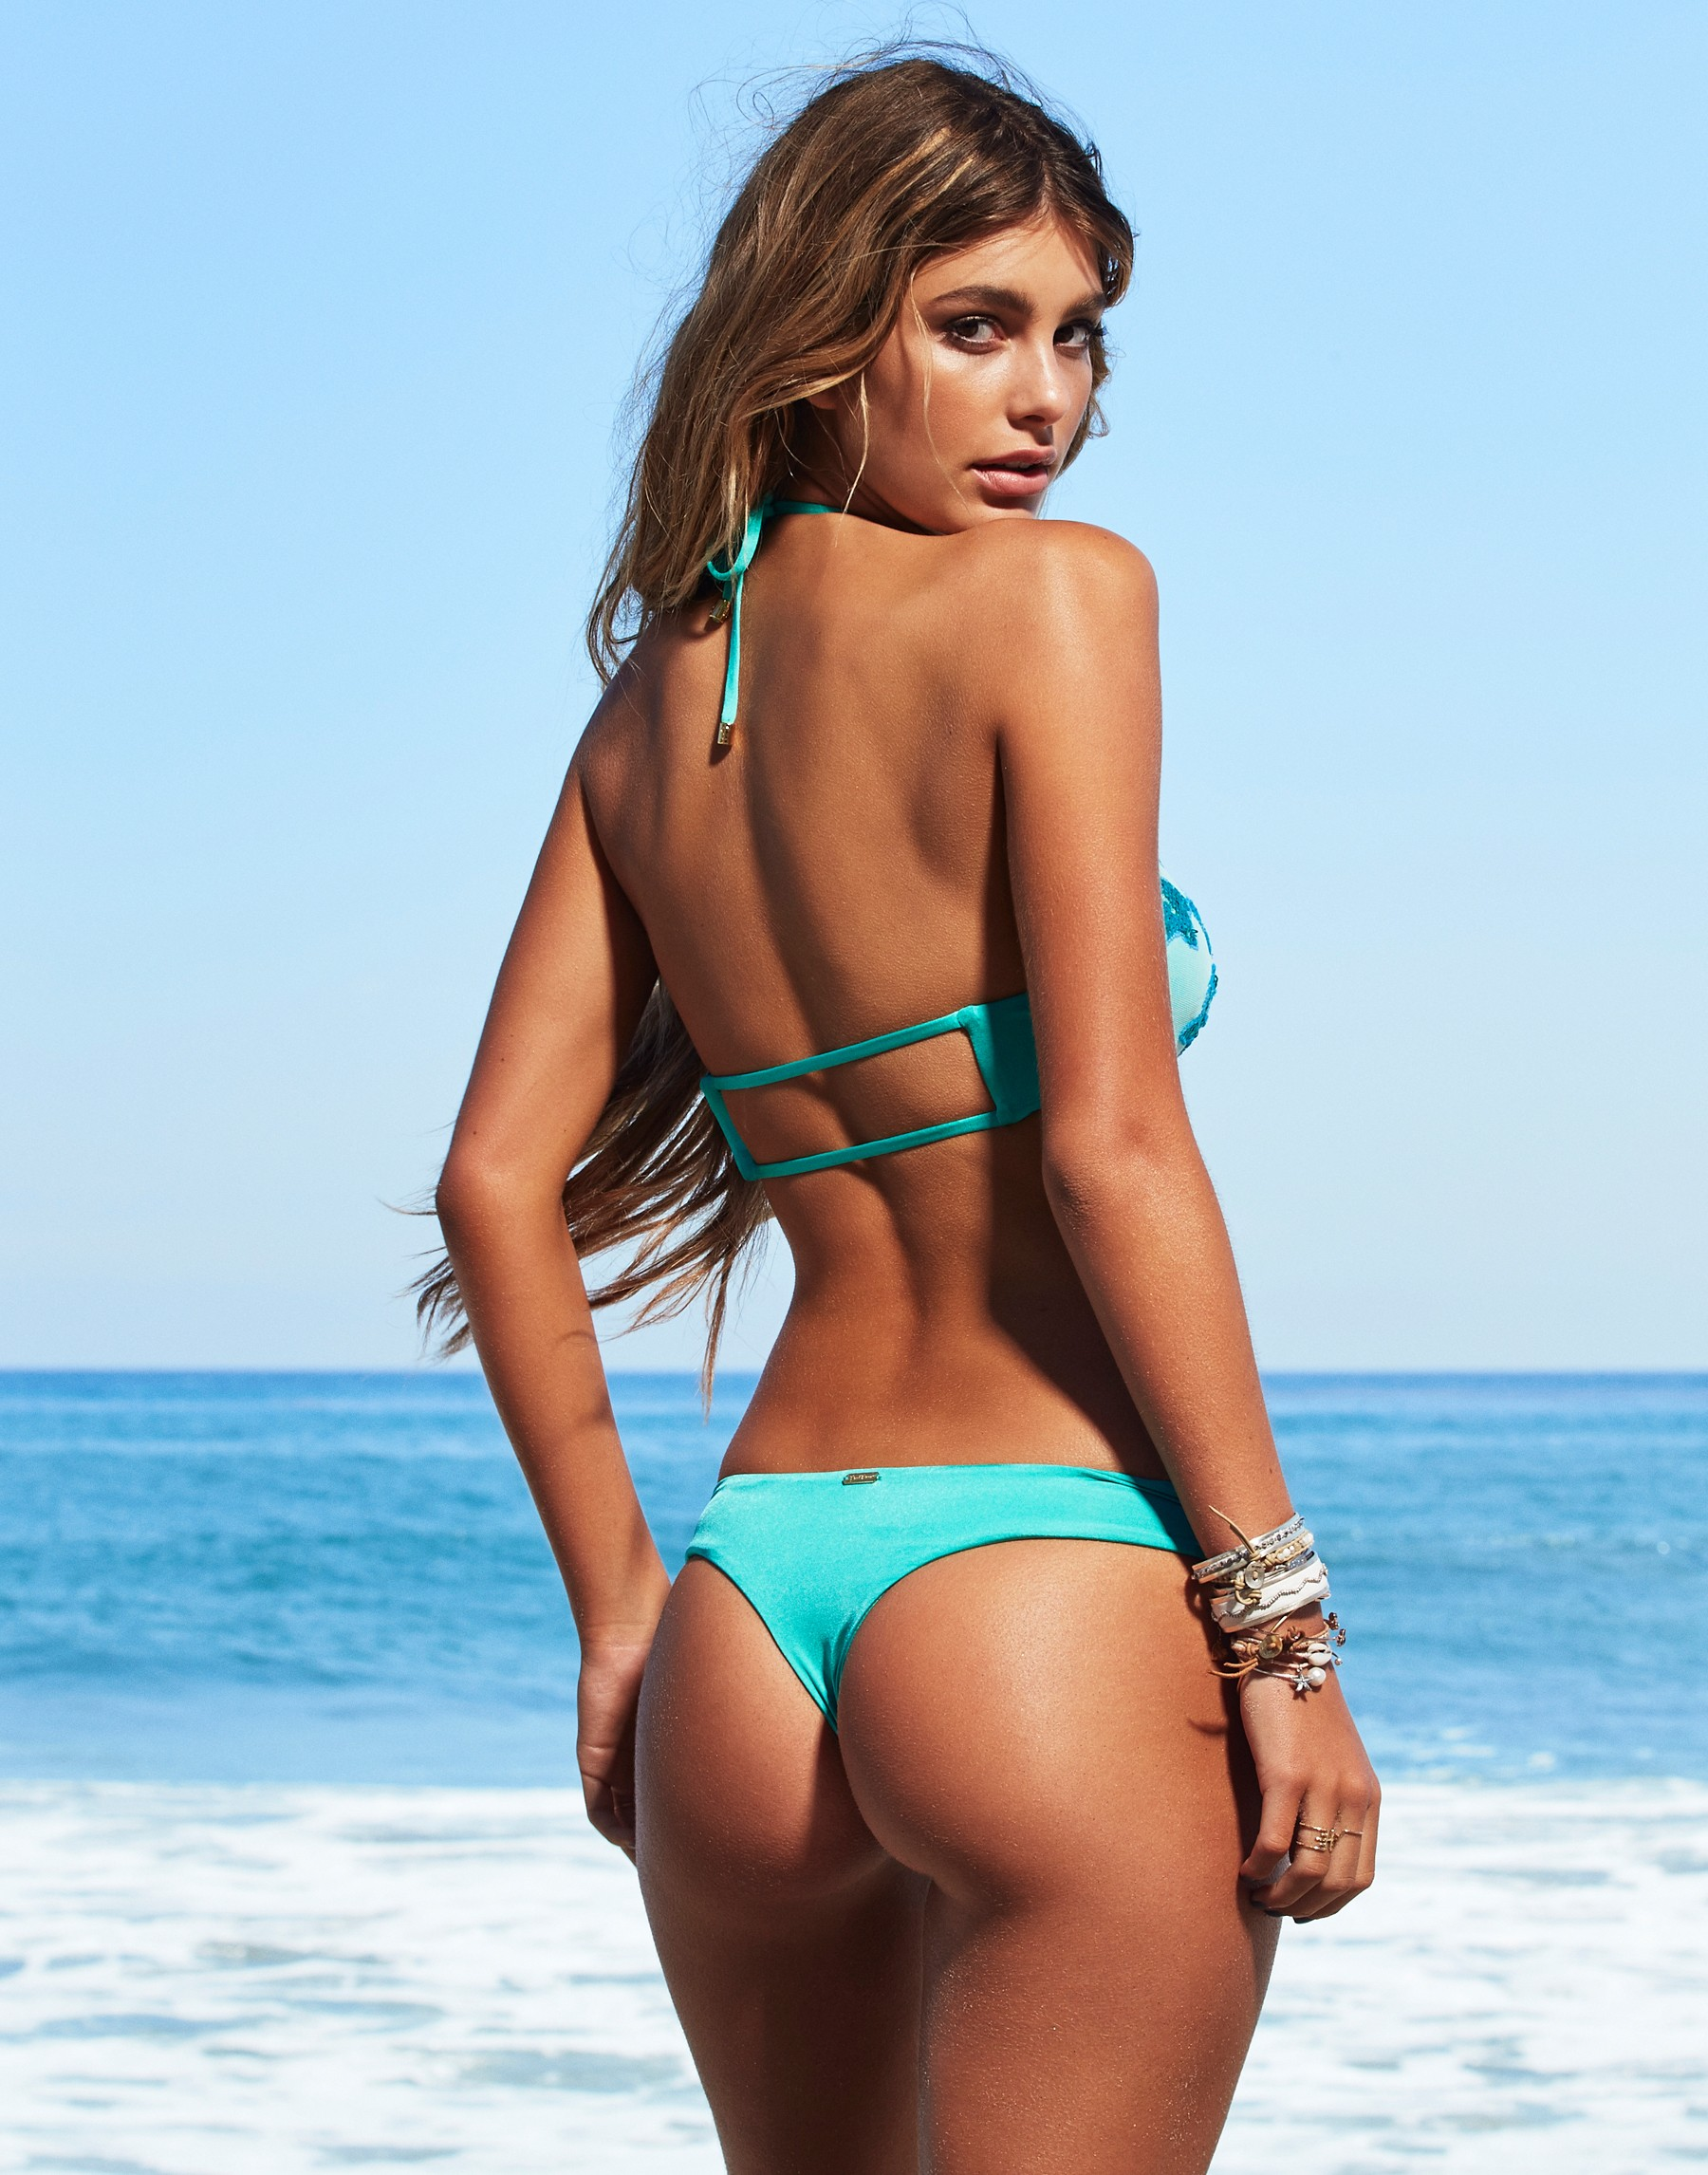 Camila Morrone Hot Tanga Images - Camila Morrone Hot Tanga Images